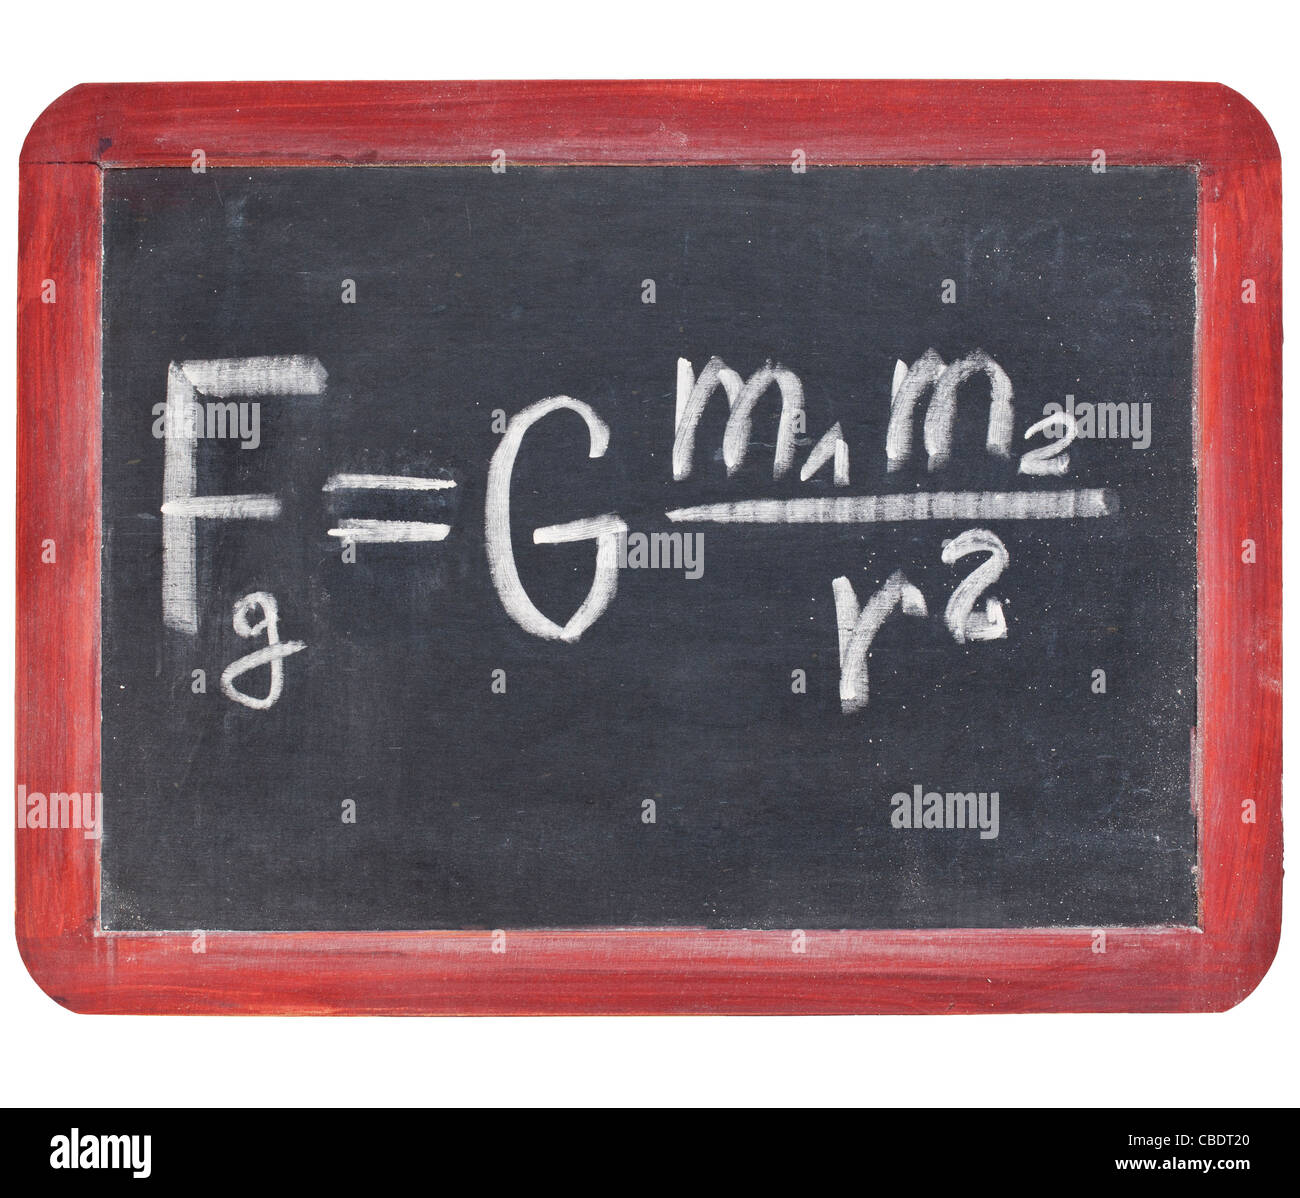 physics education concept - Newton gravity law on a small slate blackboard - Stock Image